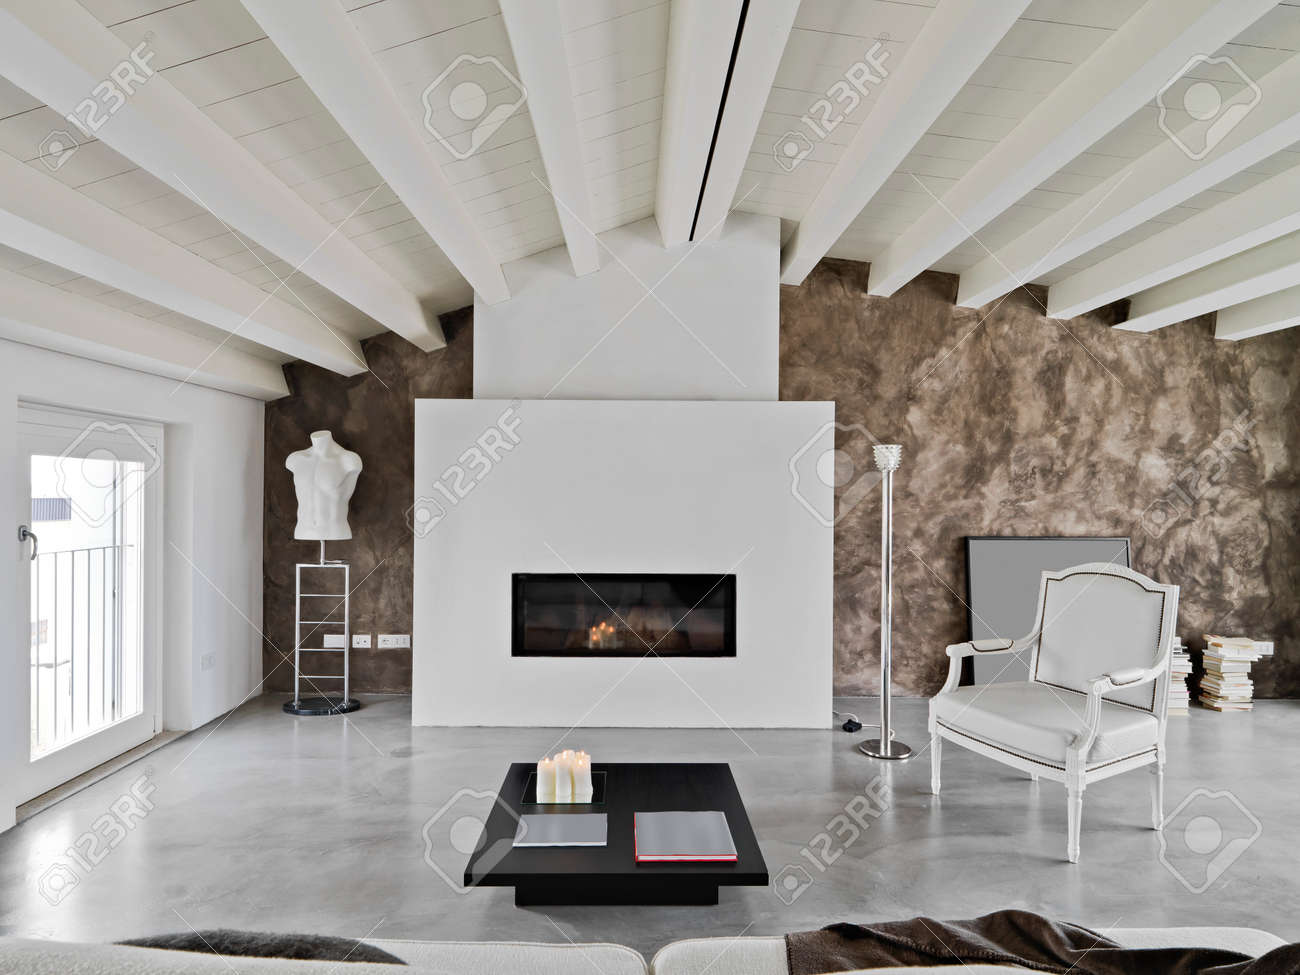 modern living room with fireplace and sofa in the attic Standard-Bild - 25456550